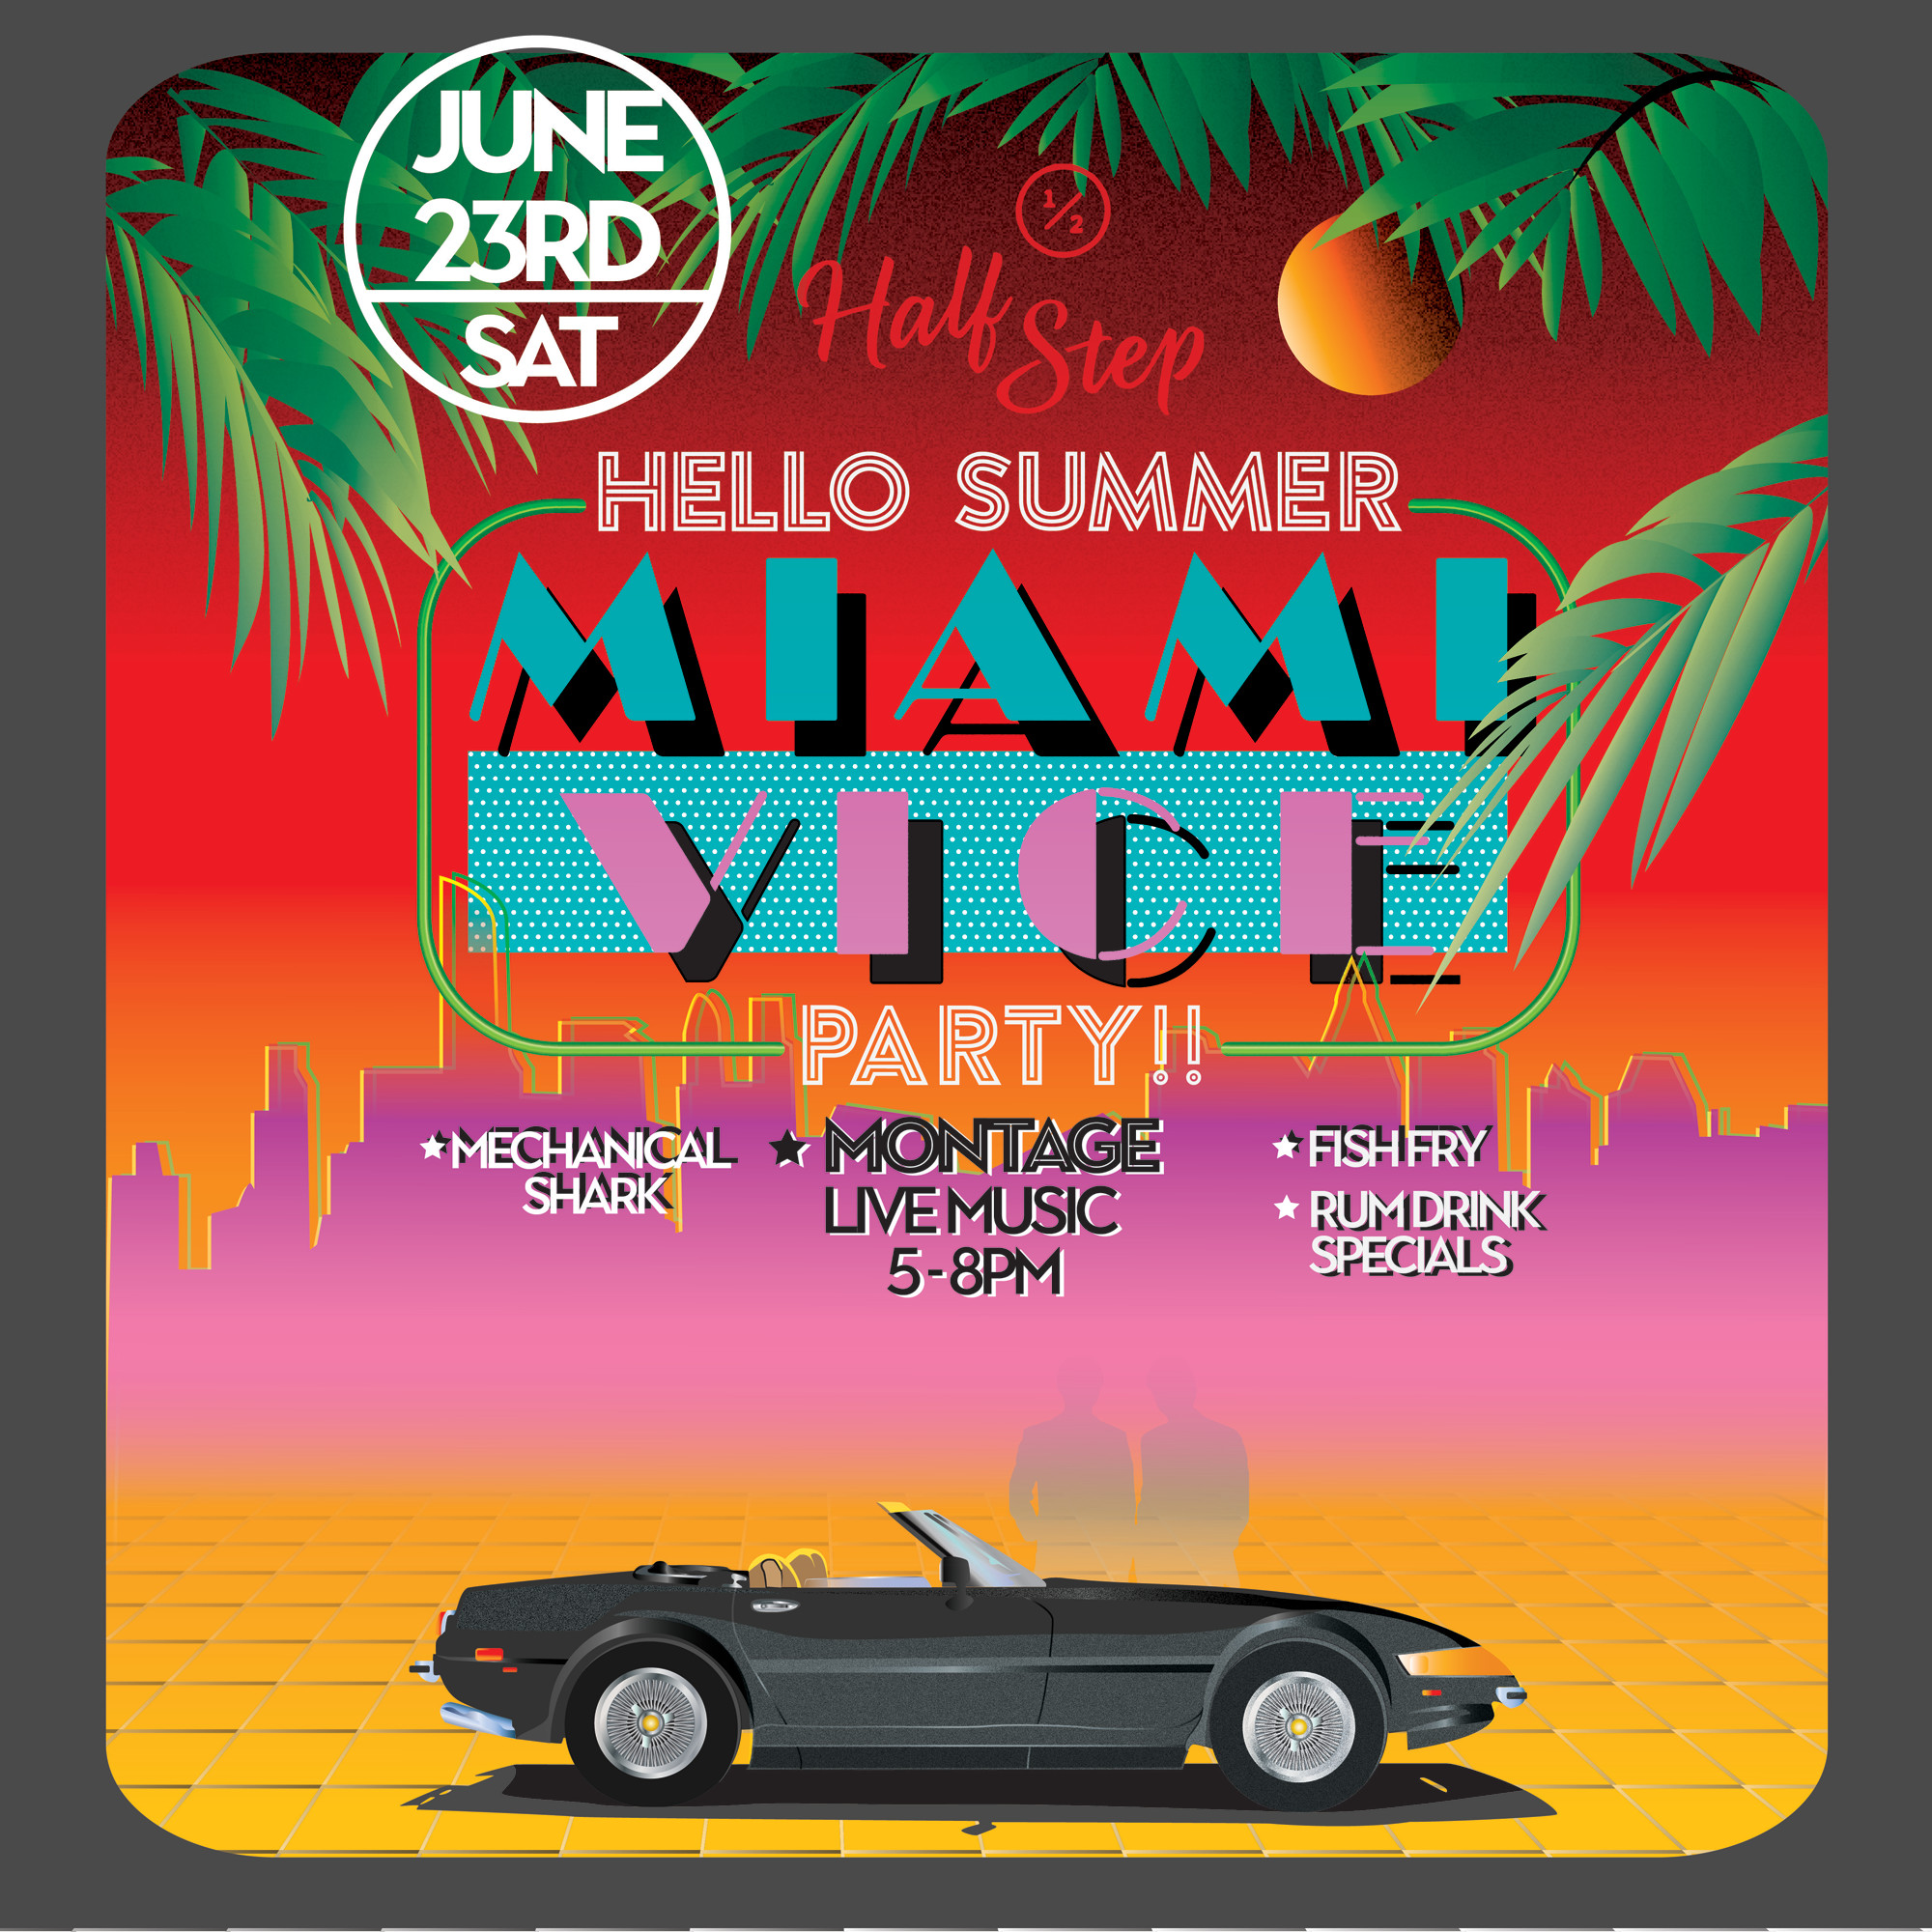 HS_MiamiVice_poster